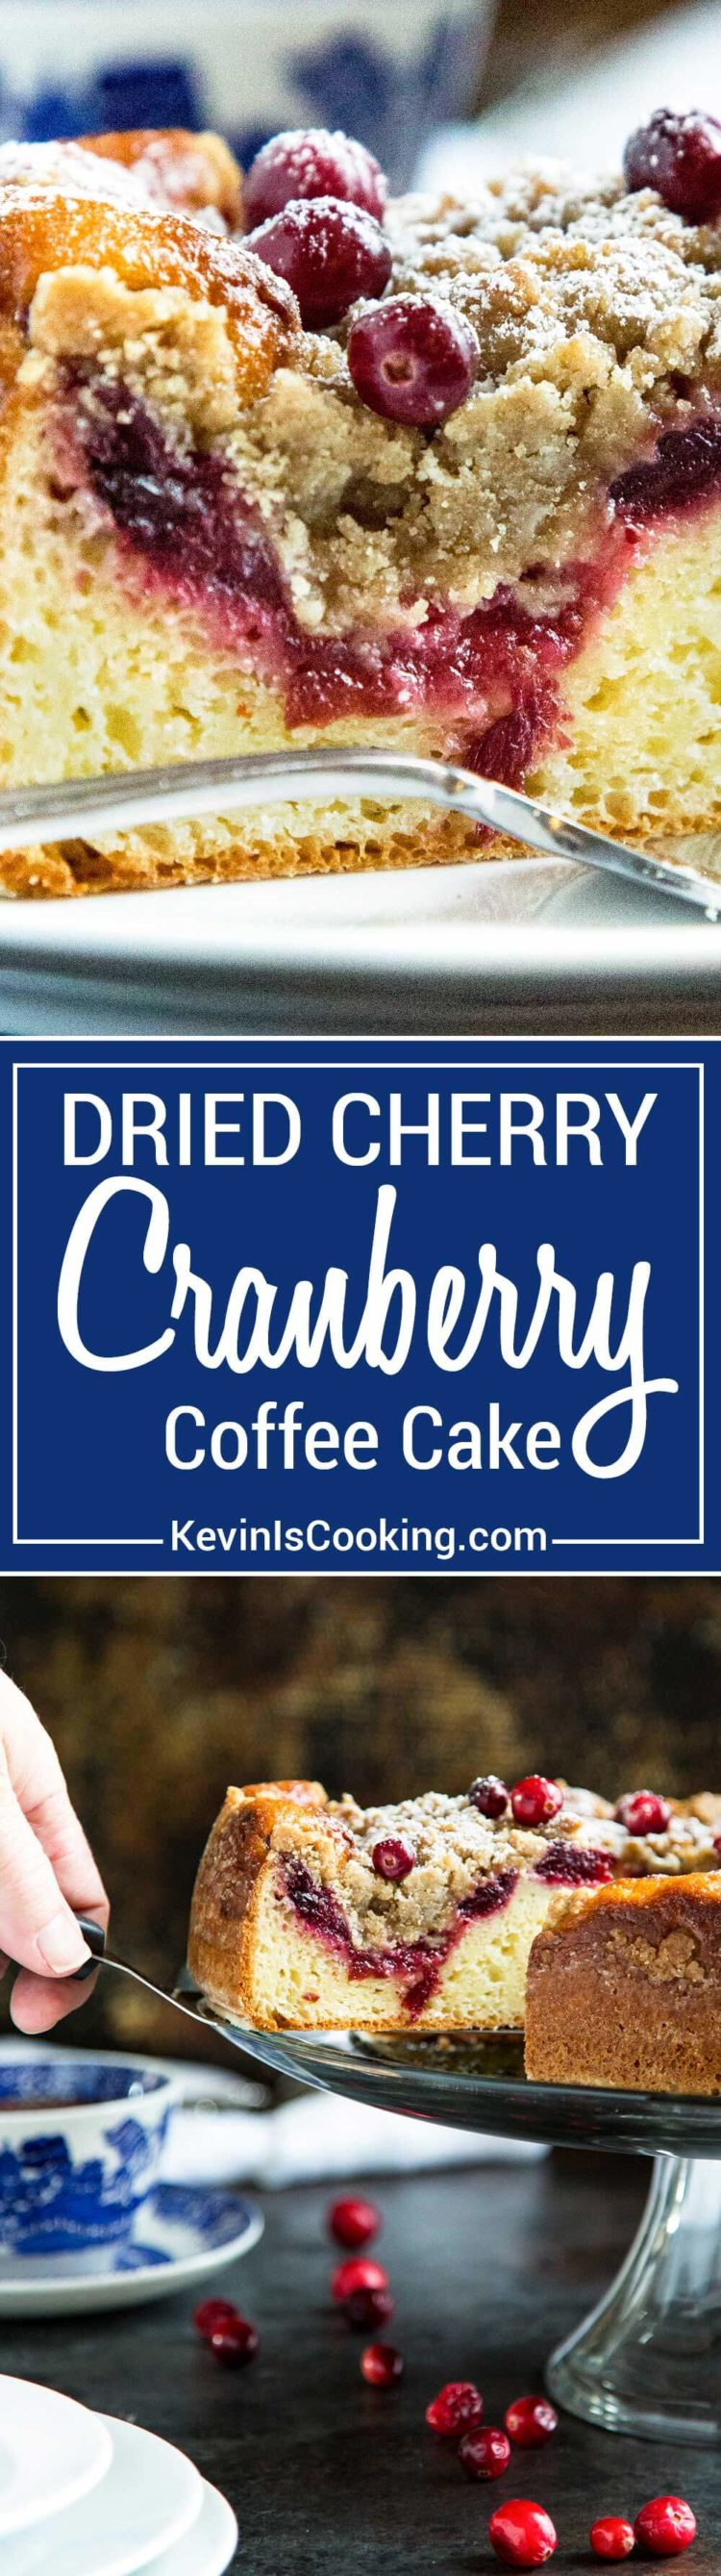 This Cranberry Coffee Cake has a brown sugar streusel that's a crumbly and sweet contrast to the tangy cranberry jam that tops this super moist coffee cake.